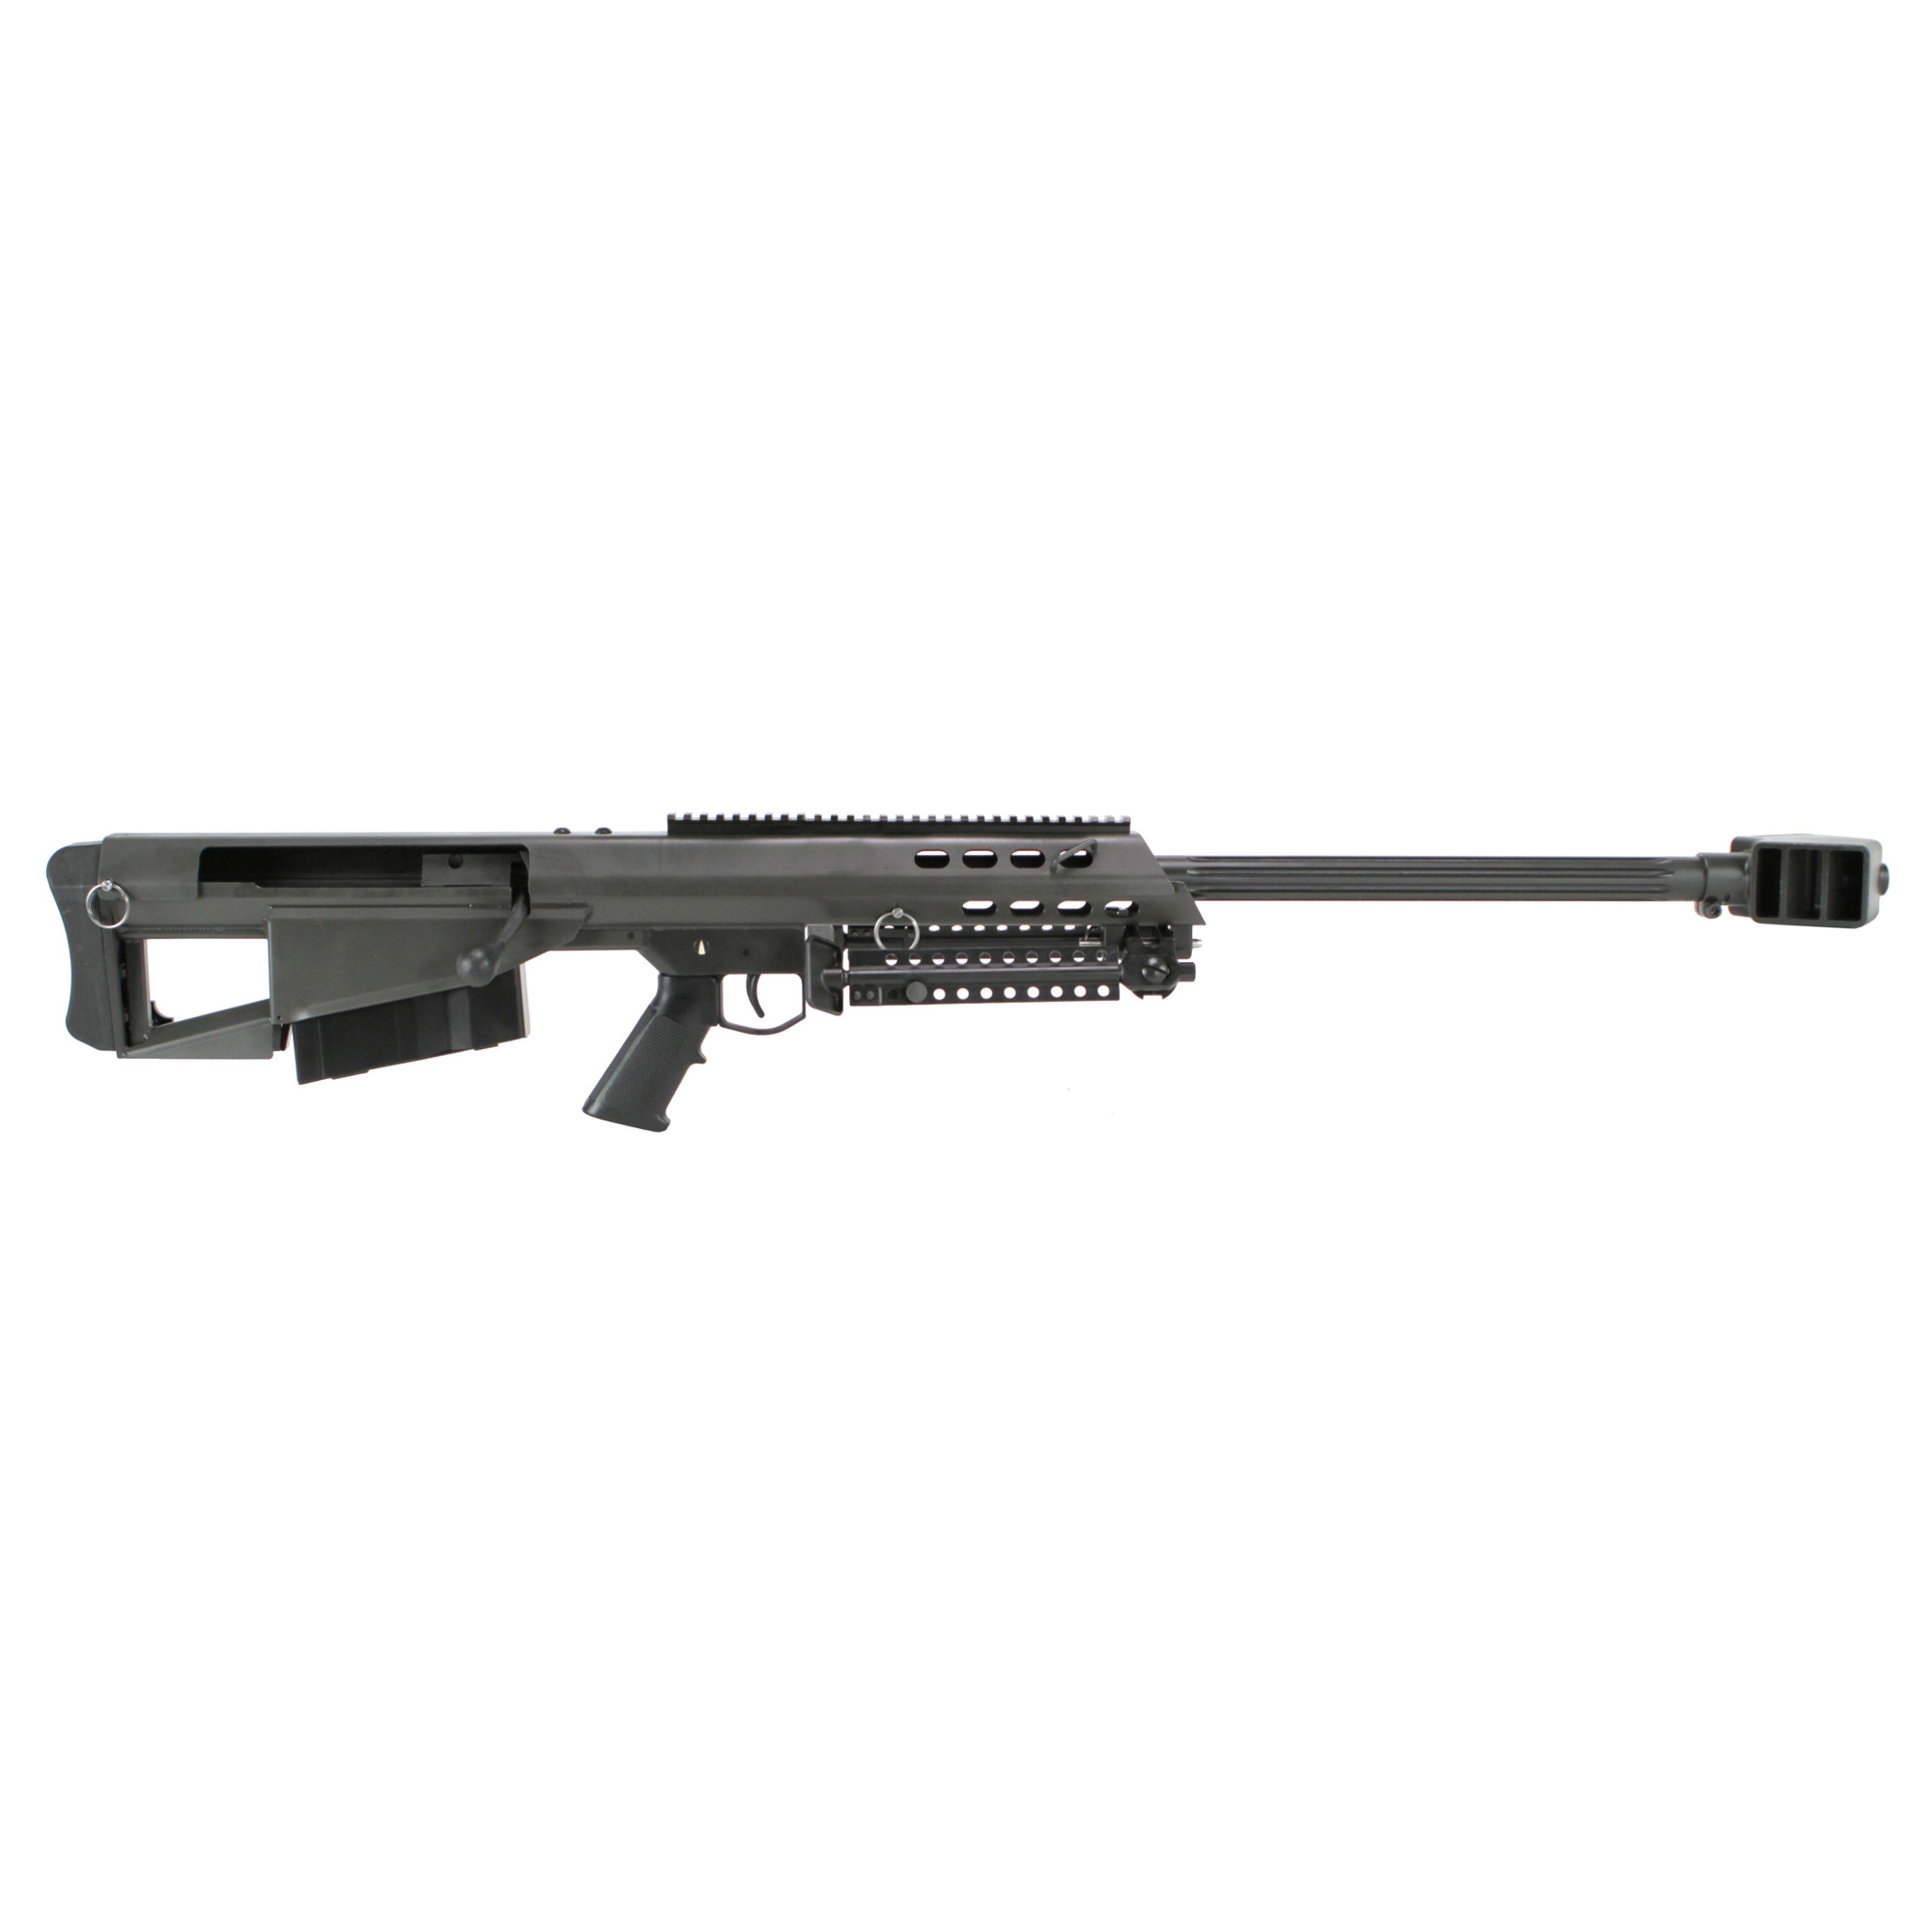 "The bolt-action Model 95 represents the ideal balance of size and performance. Its innovative bullpup design minimizes overall length without sacrificing ballistic performance or accuracy of the proven 50 BMG cartridge. Fed from a 5-round detachable box magazine"" the combat-proven Model 95 is the pinnacle of simplicity for end users who demand precision"" reliability"" and power."